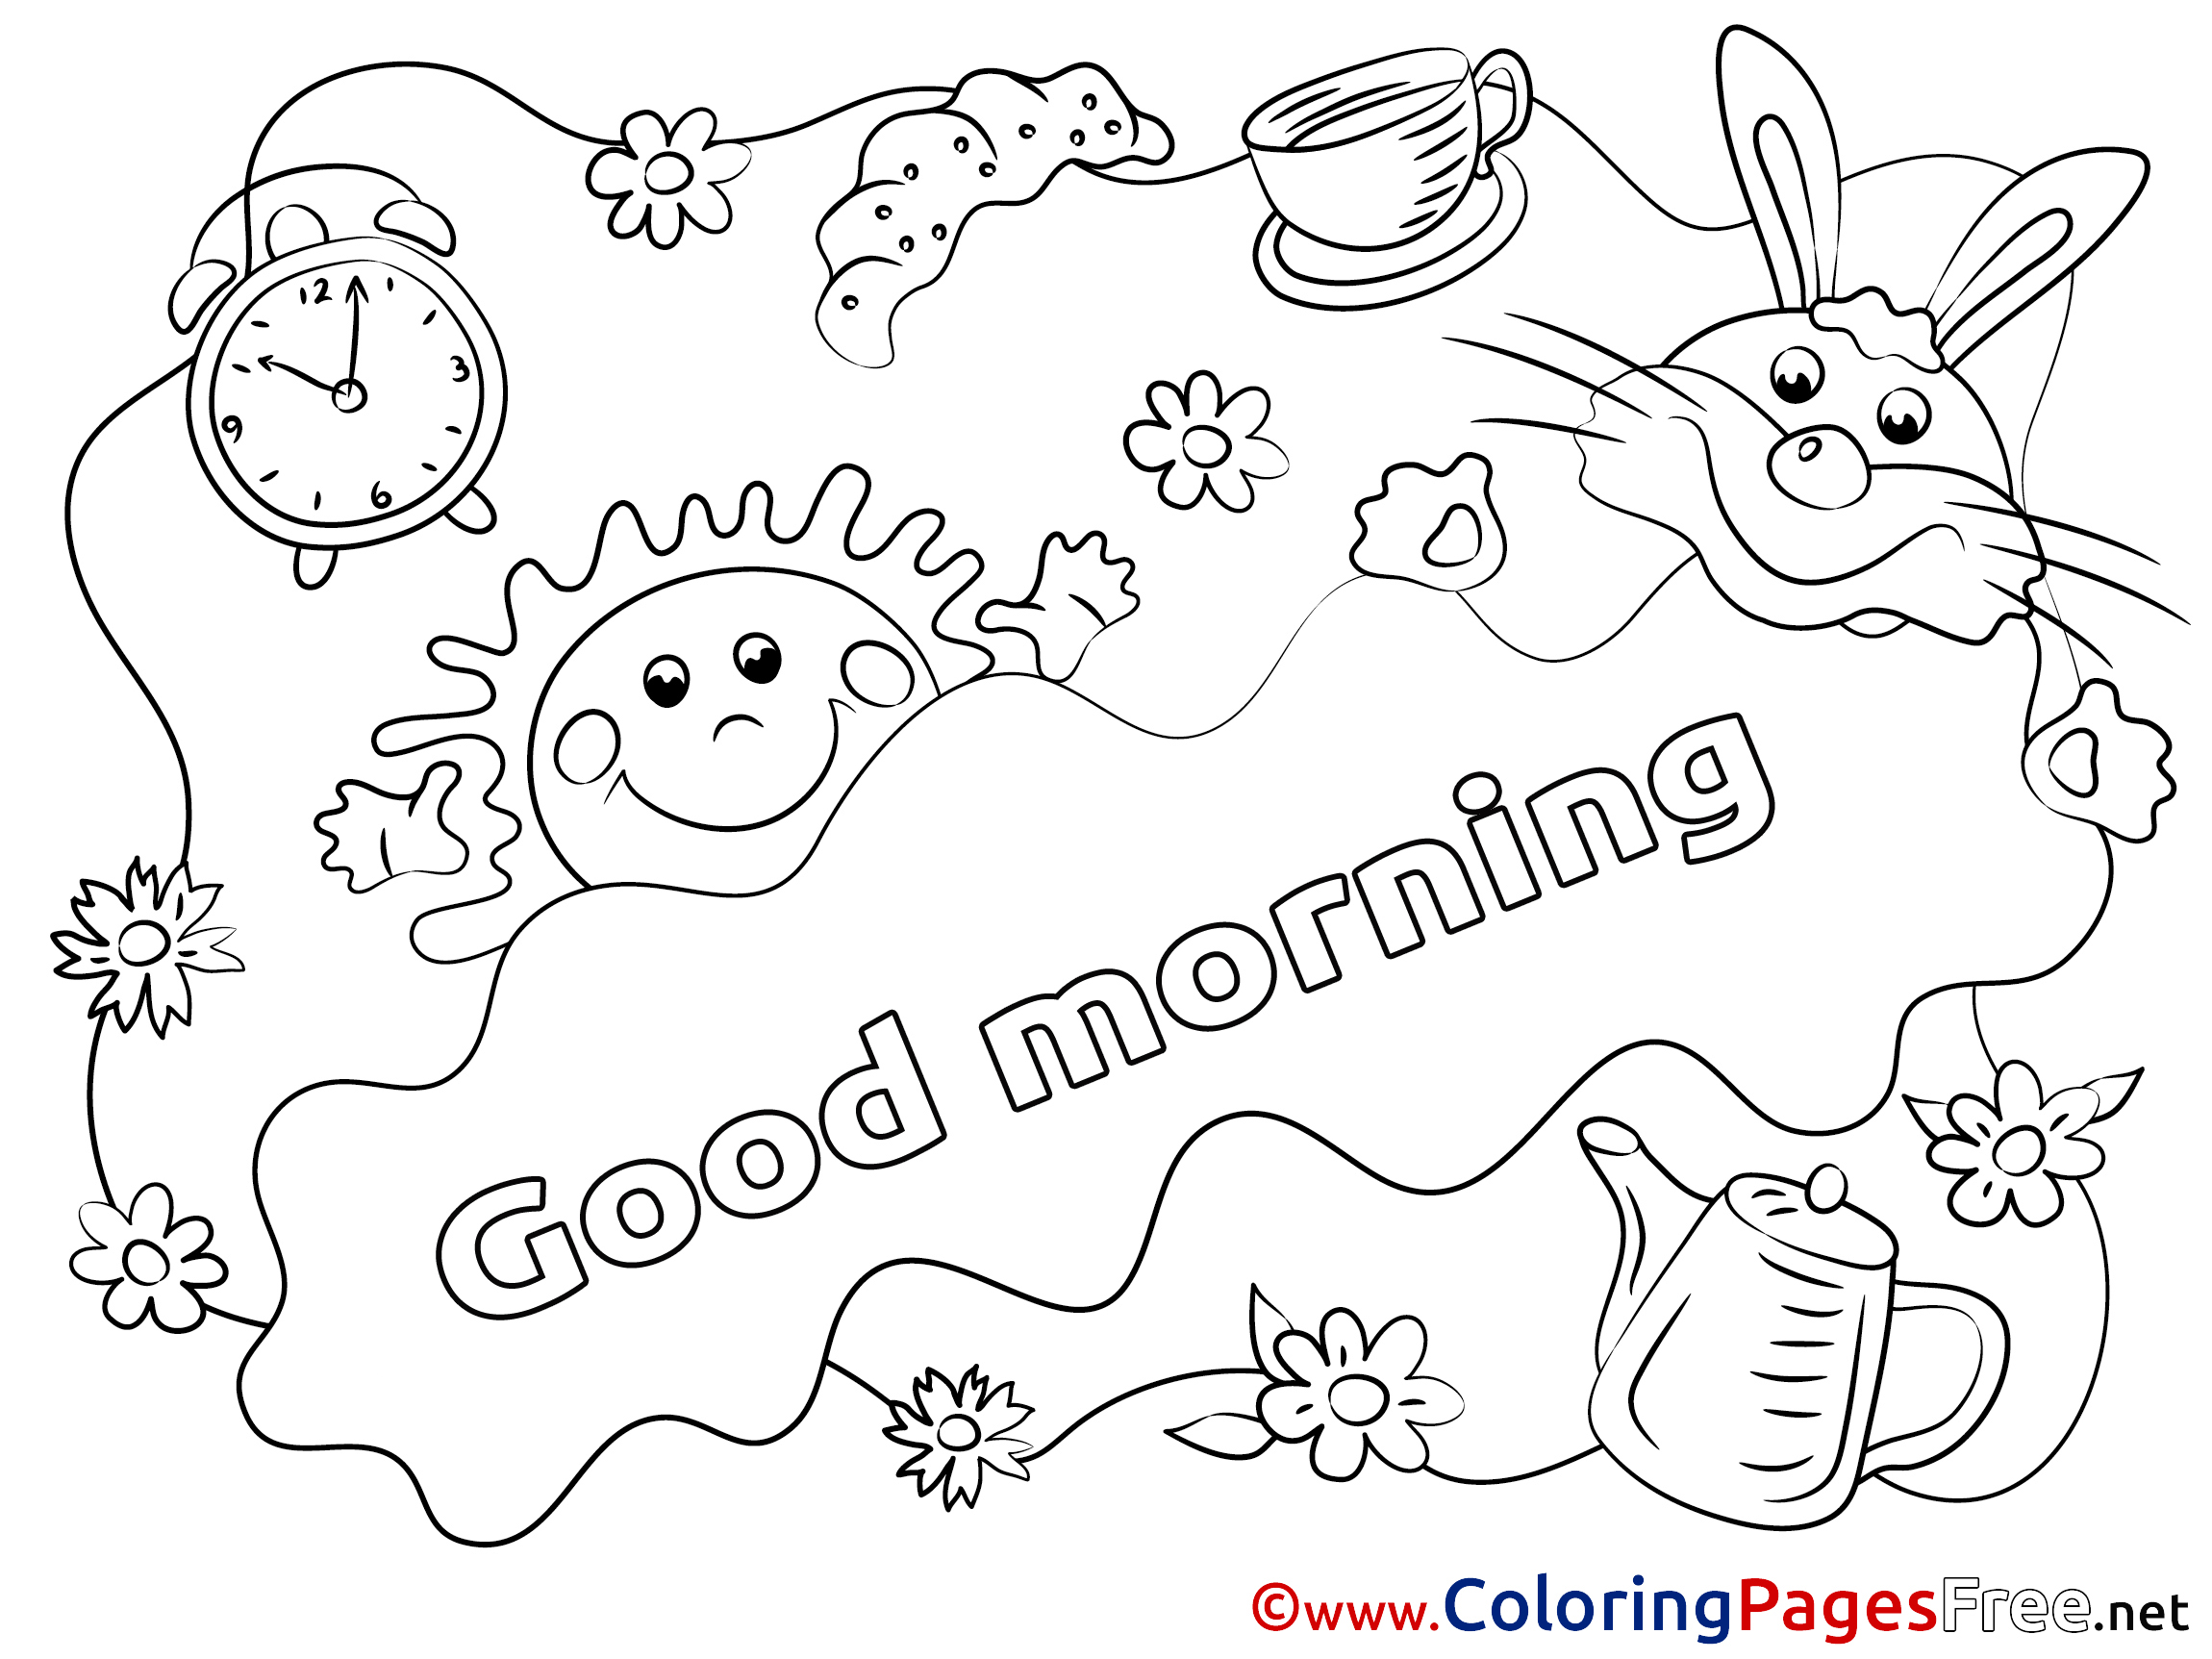 Good Morning Afternoon Coloring Pages | Coloring Pages